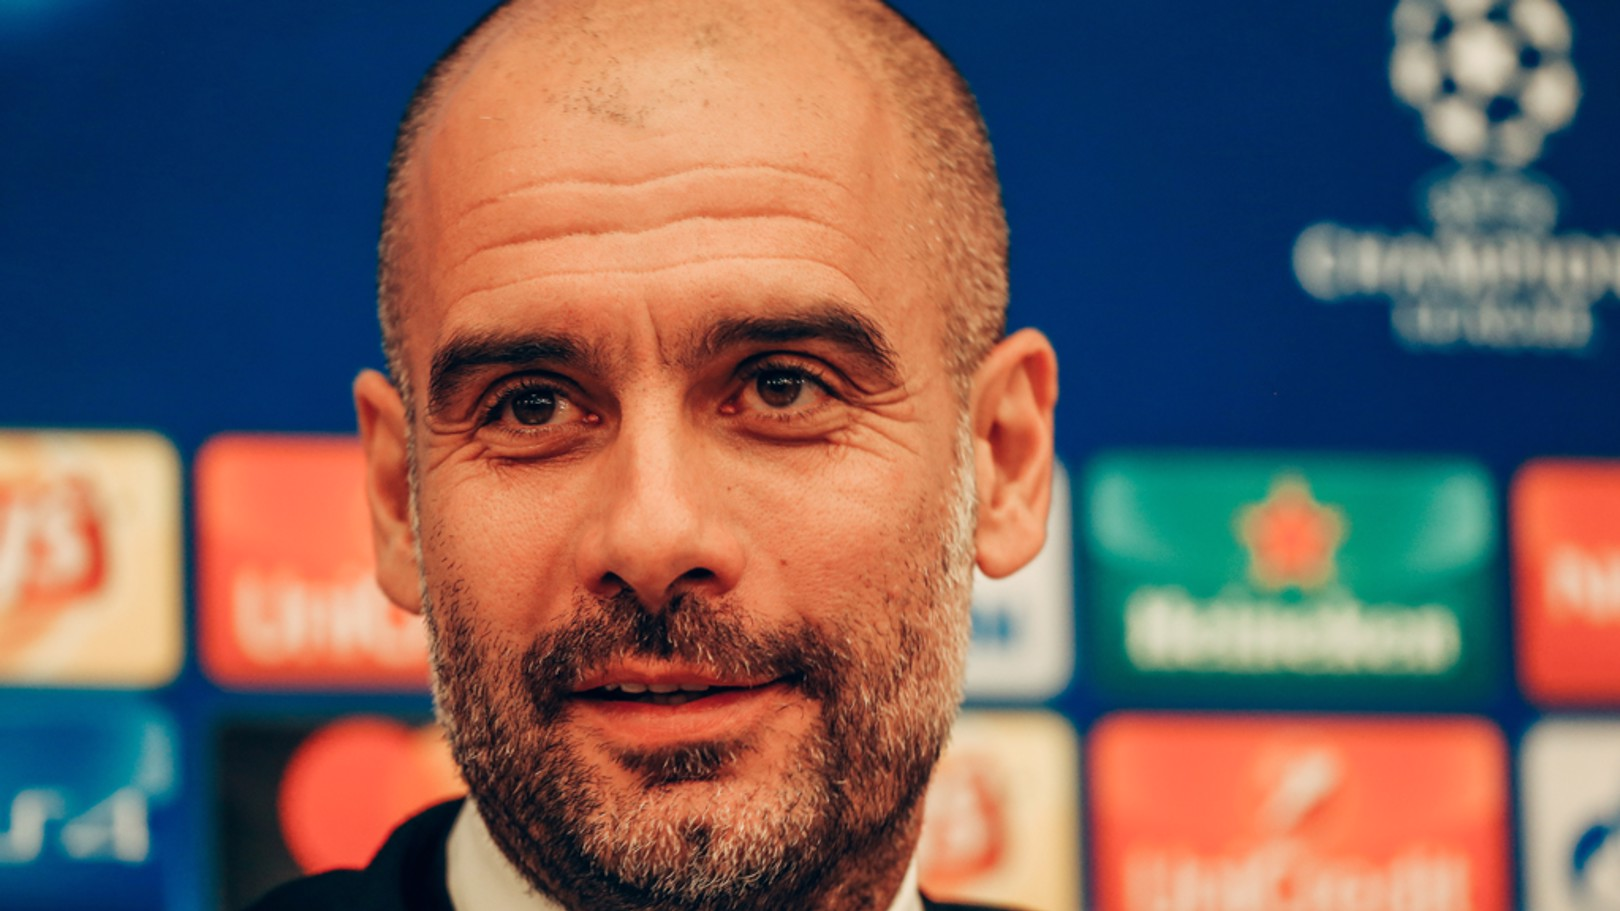 PEP TALK: Guardiola says his side are still developing